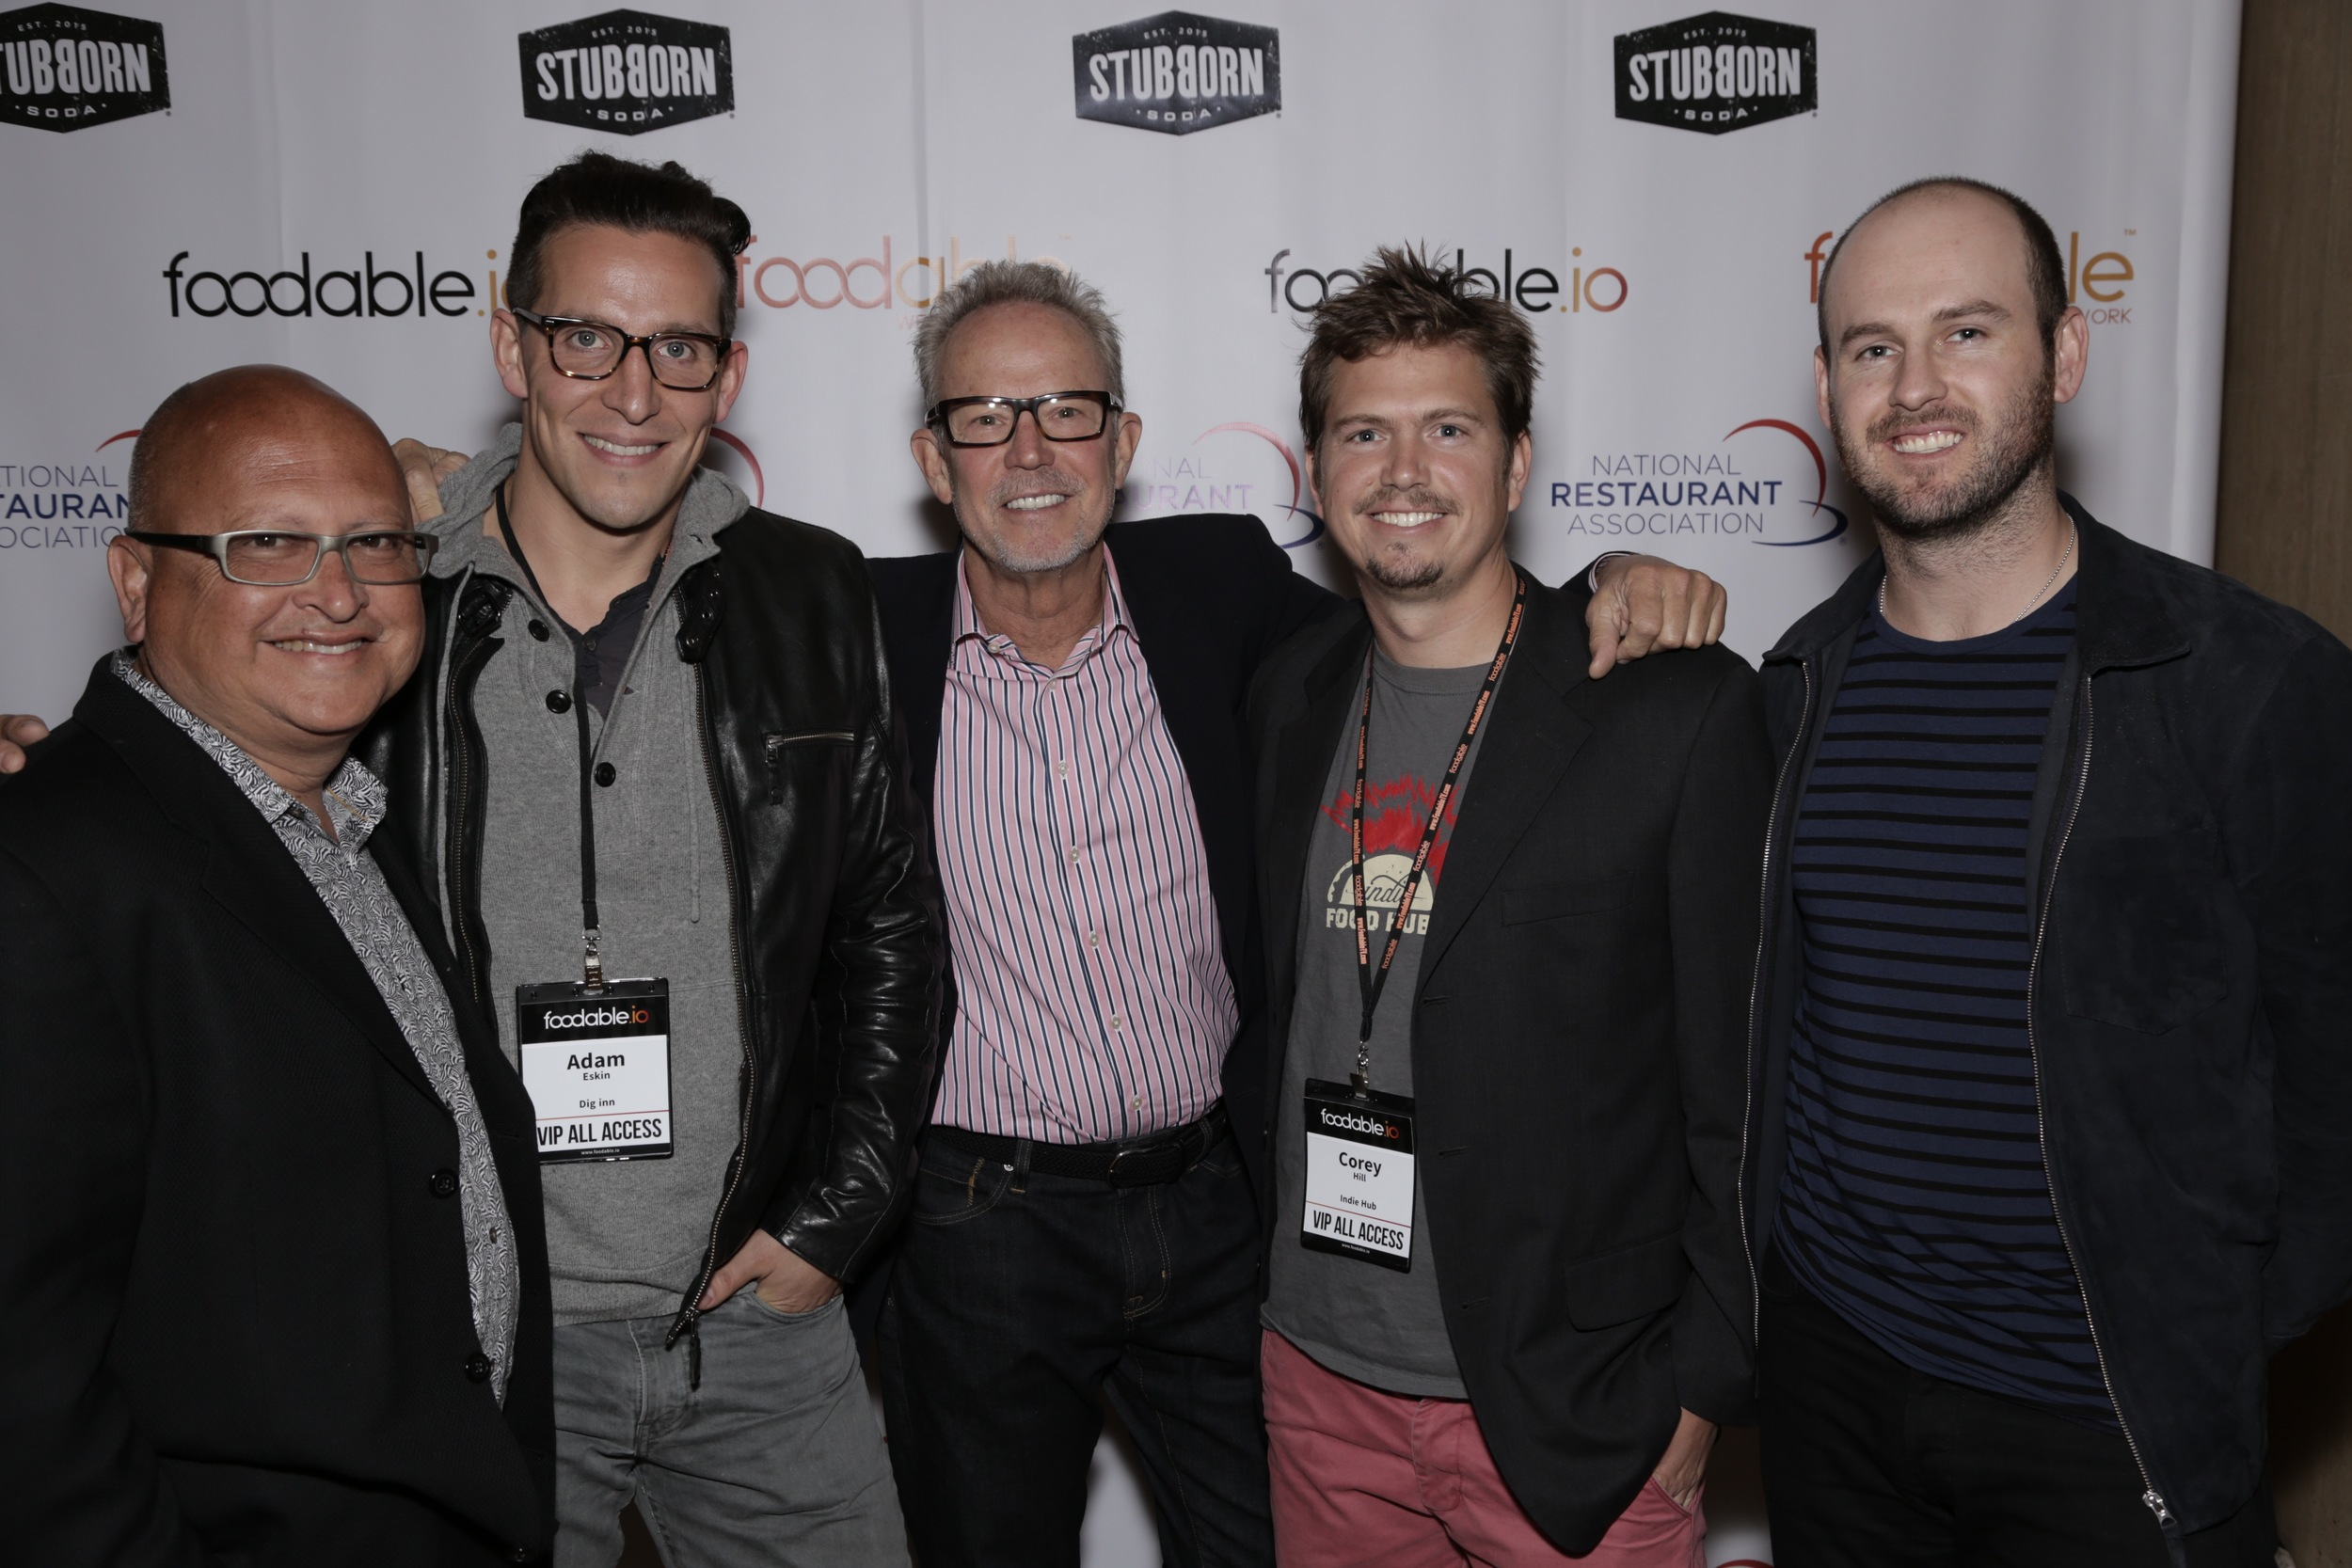 Left to Right: Fred LaFranc (Results Thru Strategy, CEO/Founder), Adam Eskin (Dig Inn, founder); Greg Dollarhyde (Fast Fasual Pioneer with Veggie Grill and Baja Fresh); Corey Hill (Indie Food Hub, CEO/Founder); and Michael Williams (Wine 'n Dine, Director of Product)